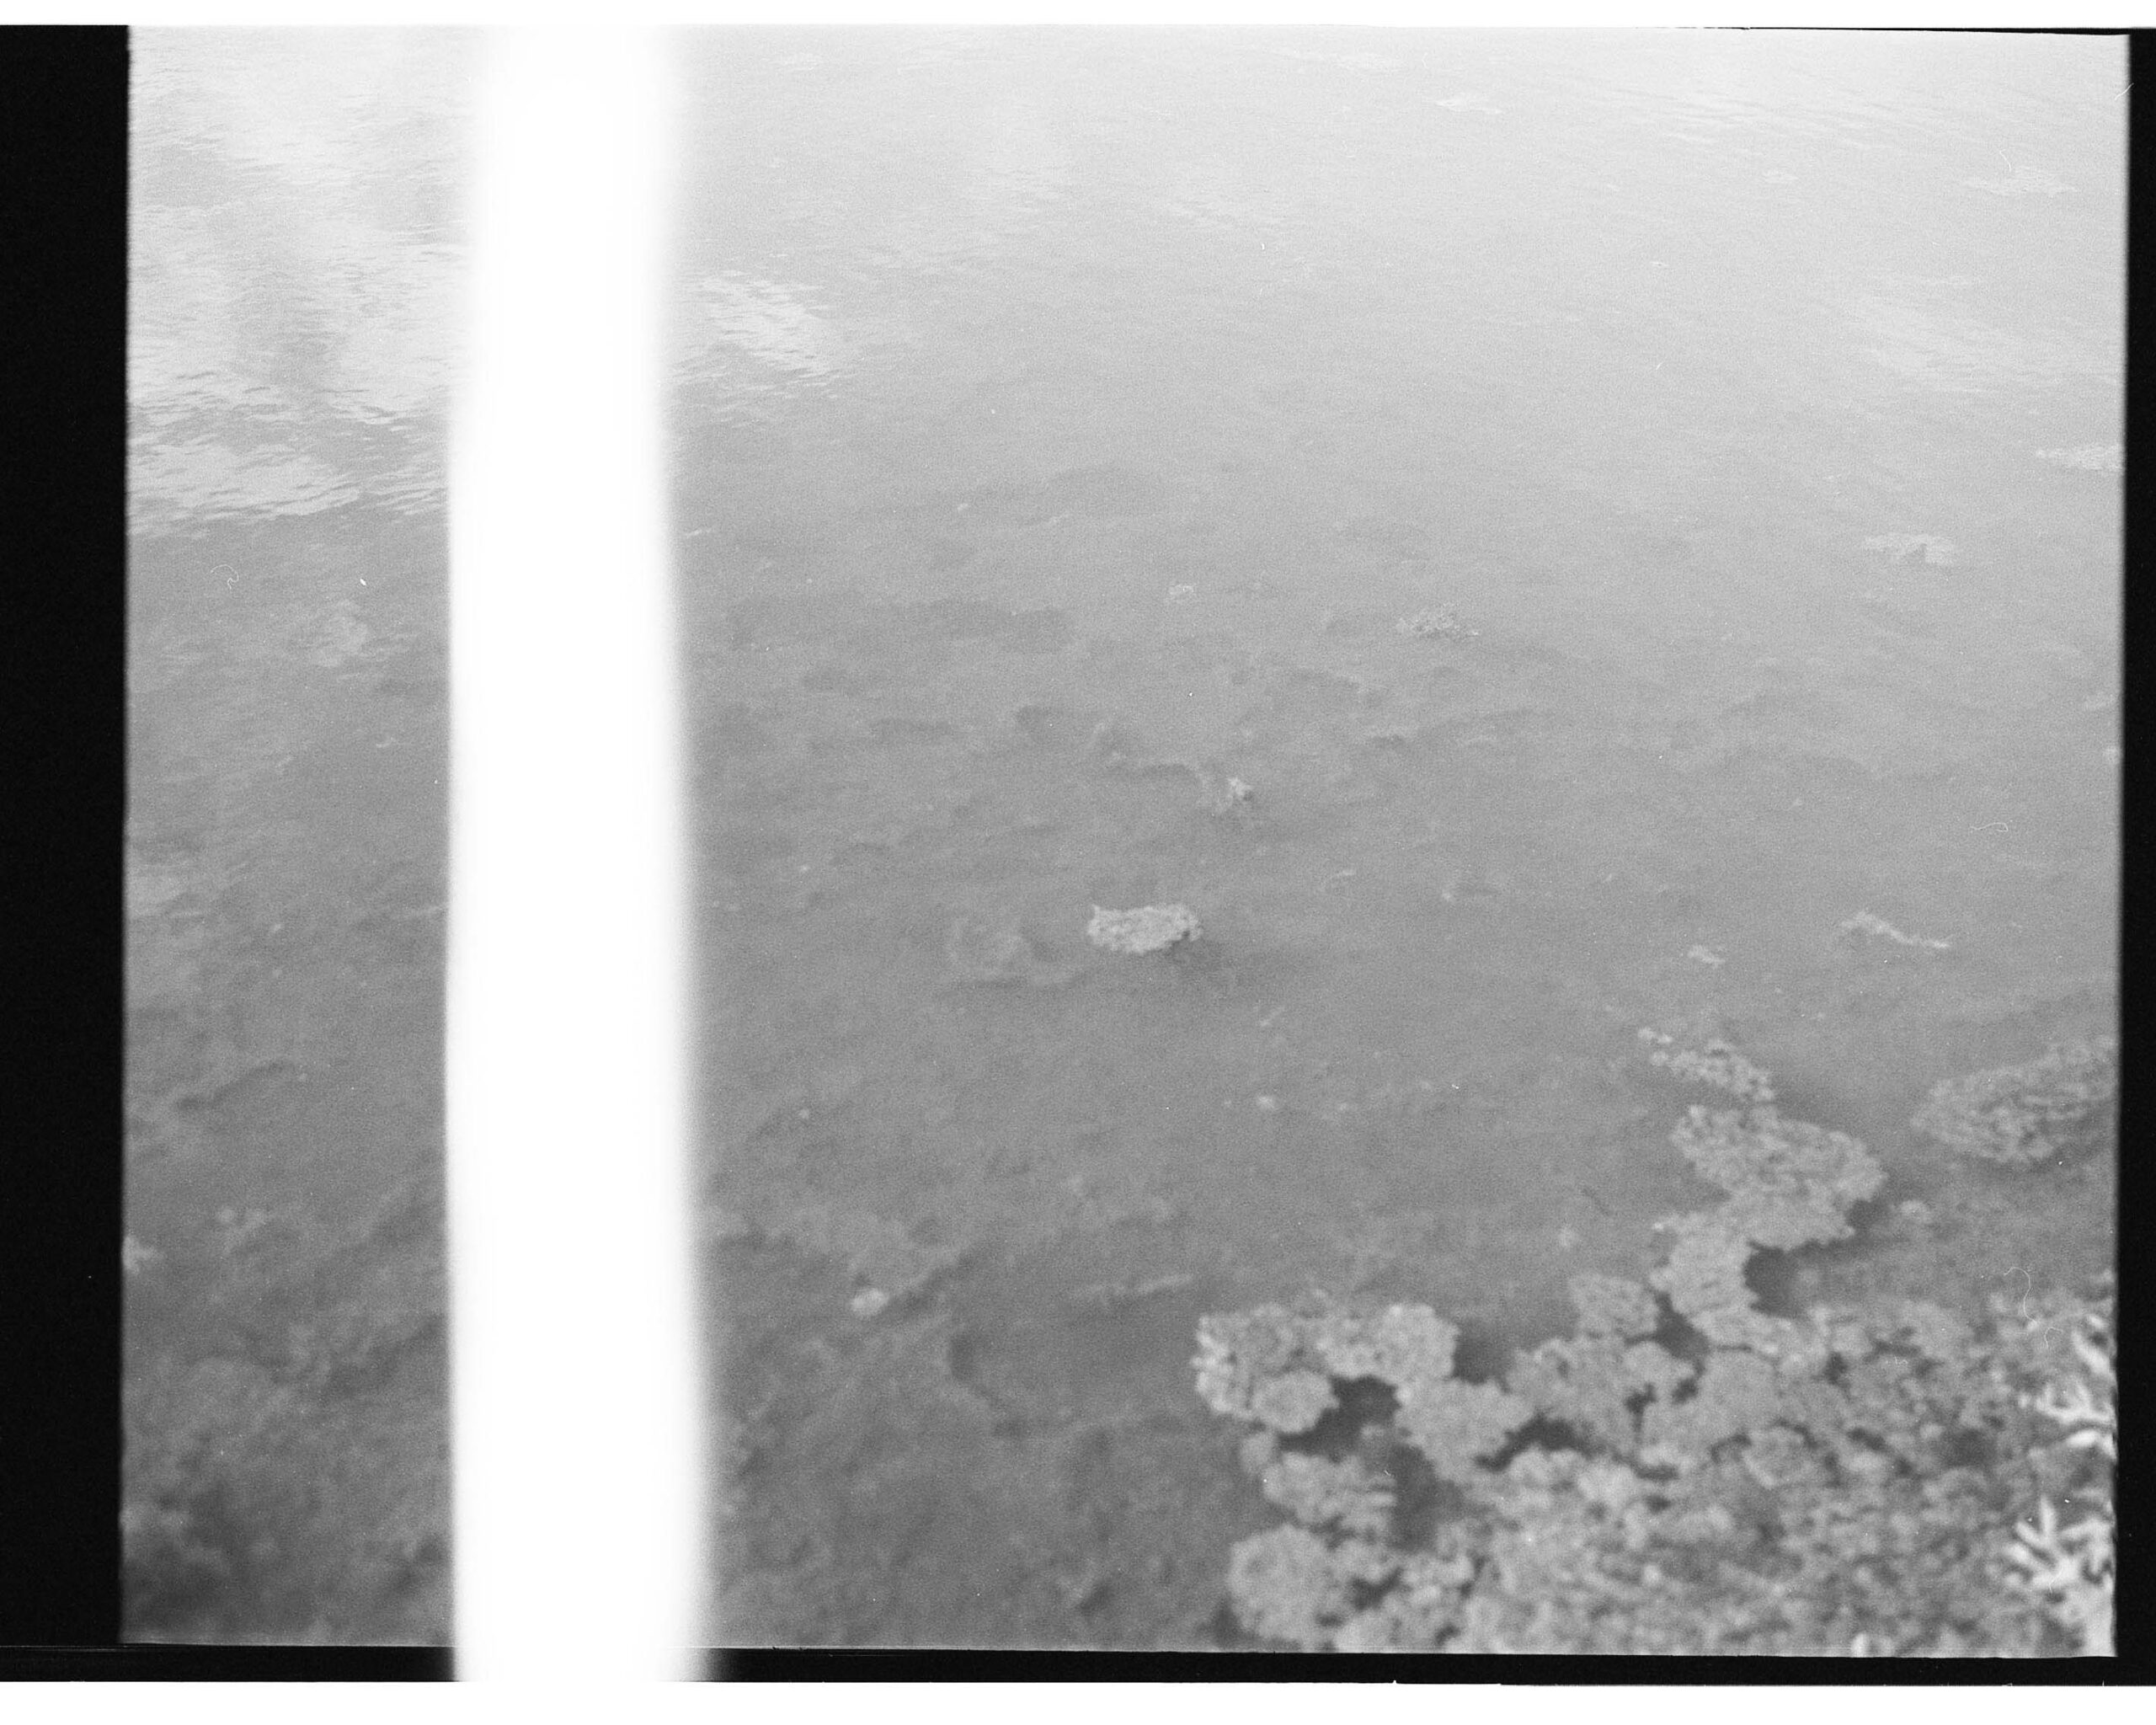 Eea, 2020 Silver gelatin print; variable dimensions - Lidia Bianchi - courtesy of the artist